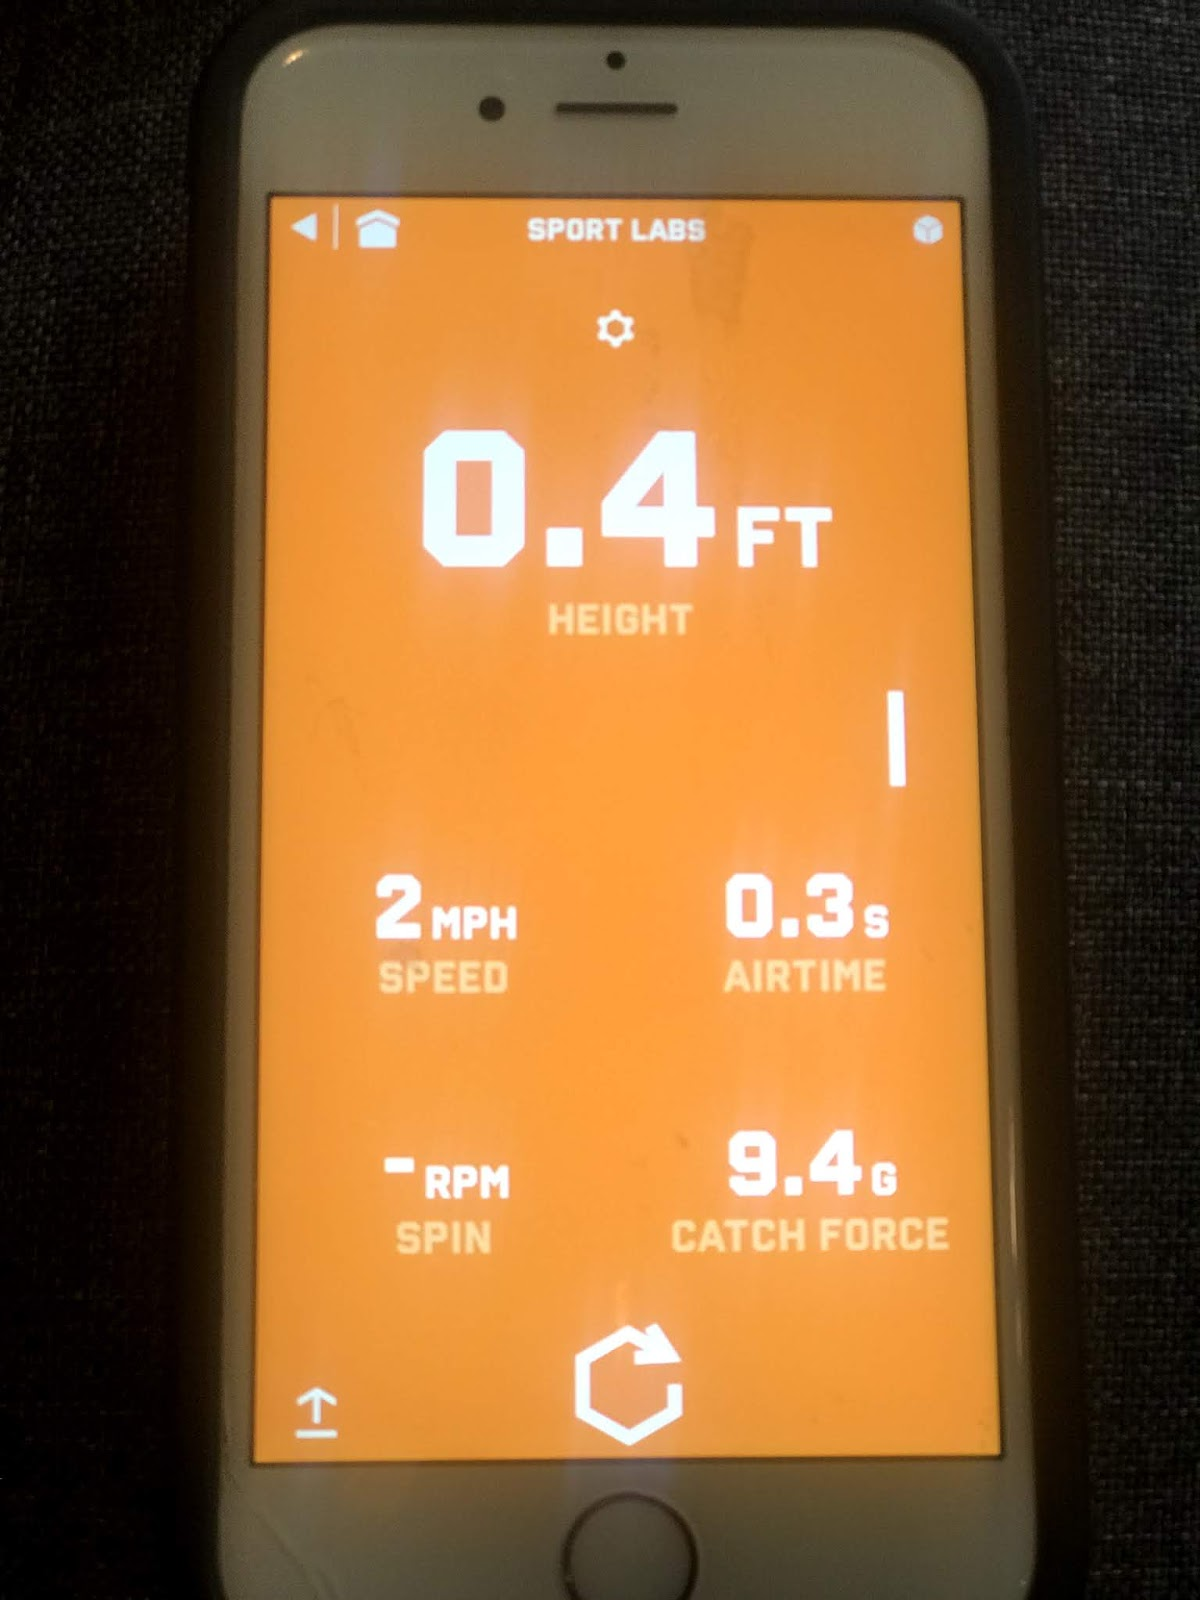 screen of the app  from the sports labs activity with the stats of throwing, speed